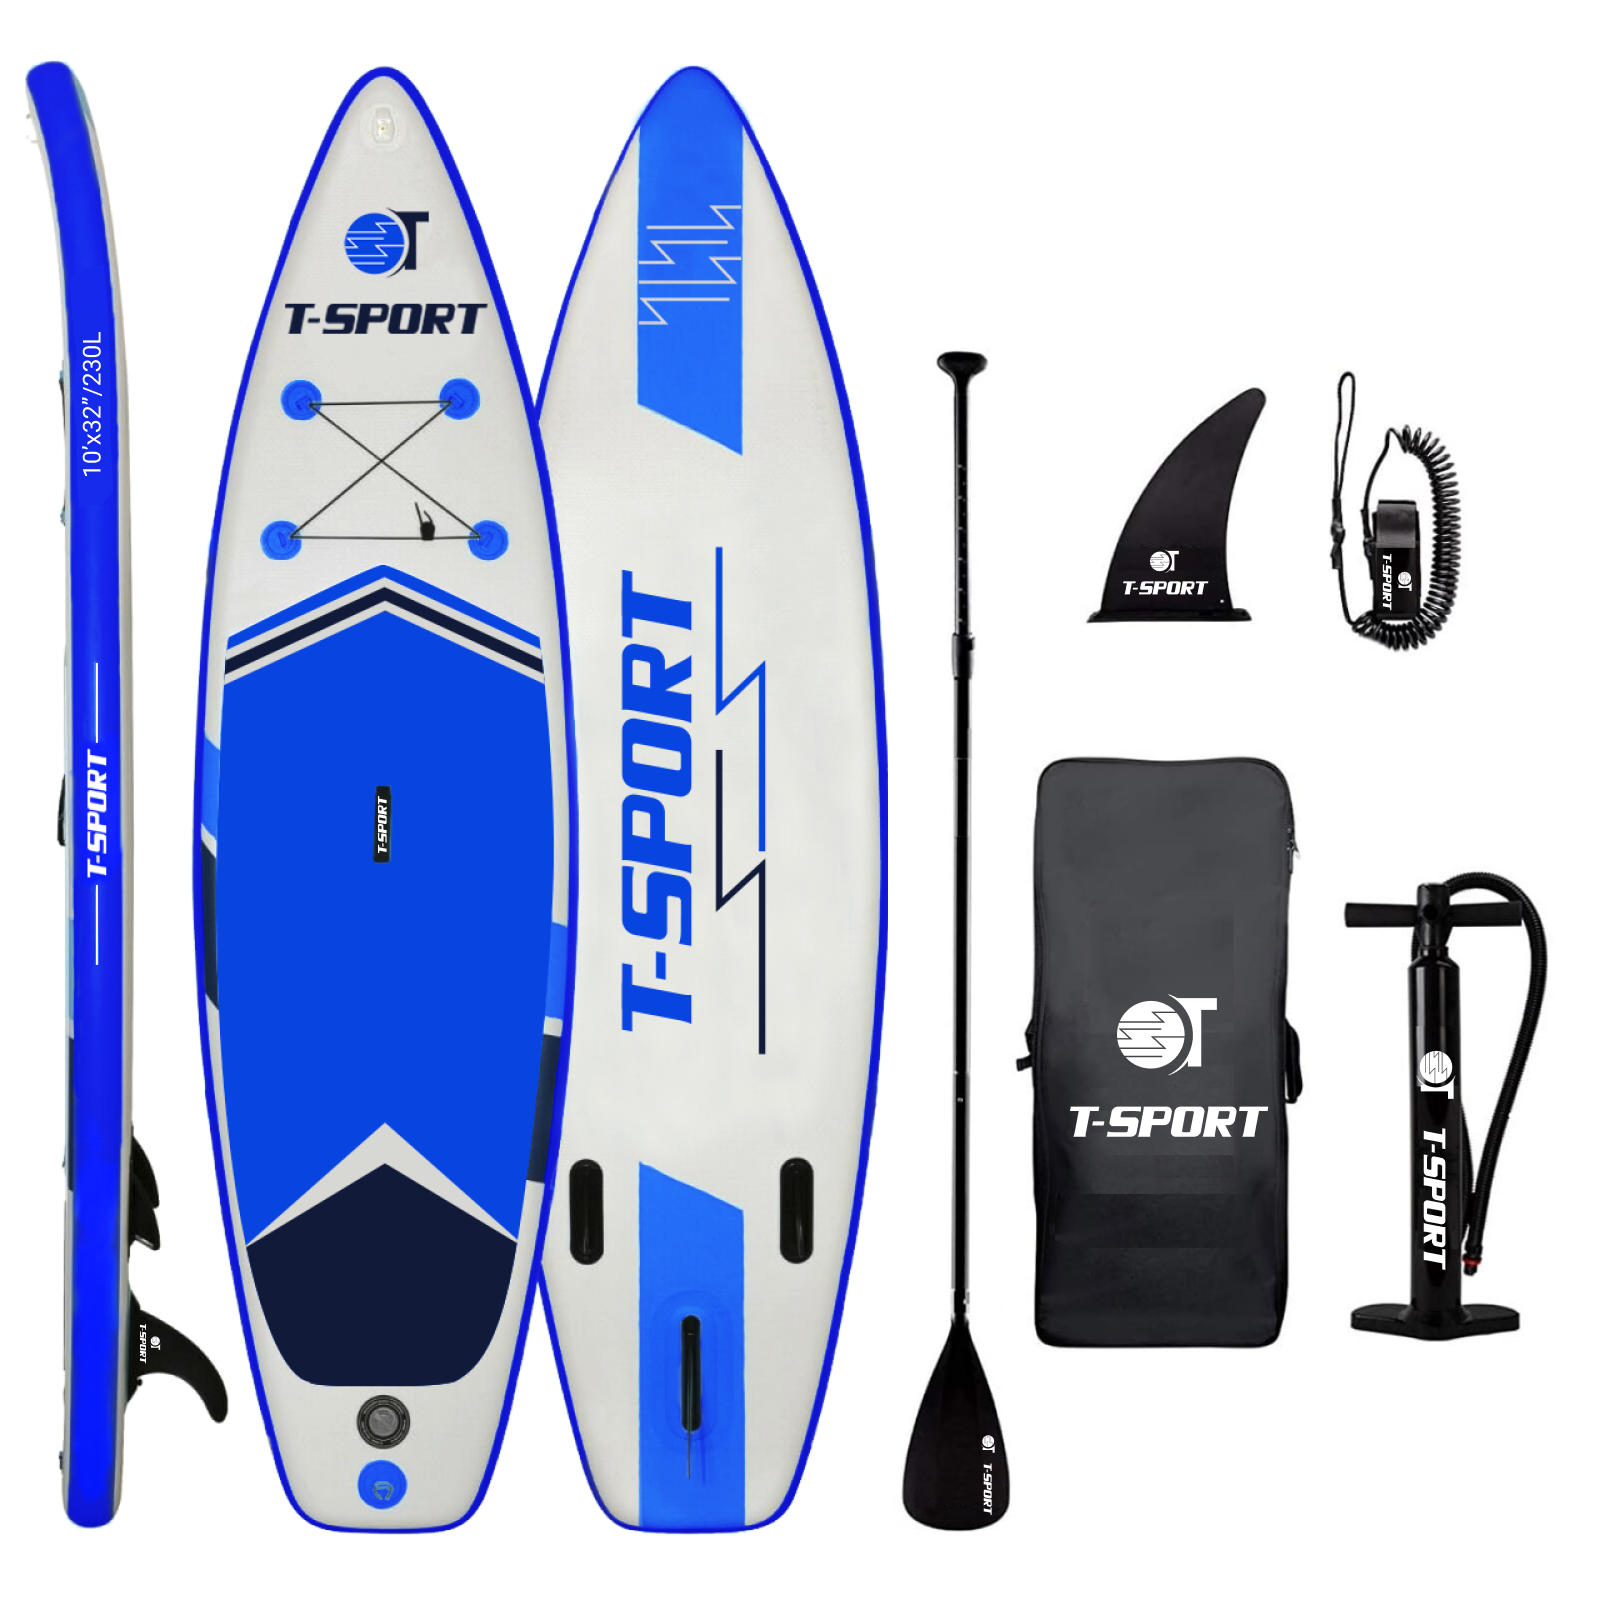 t-sport paddle board red